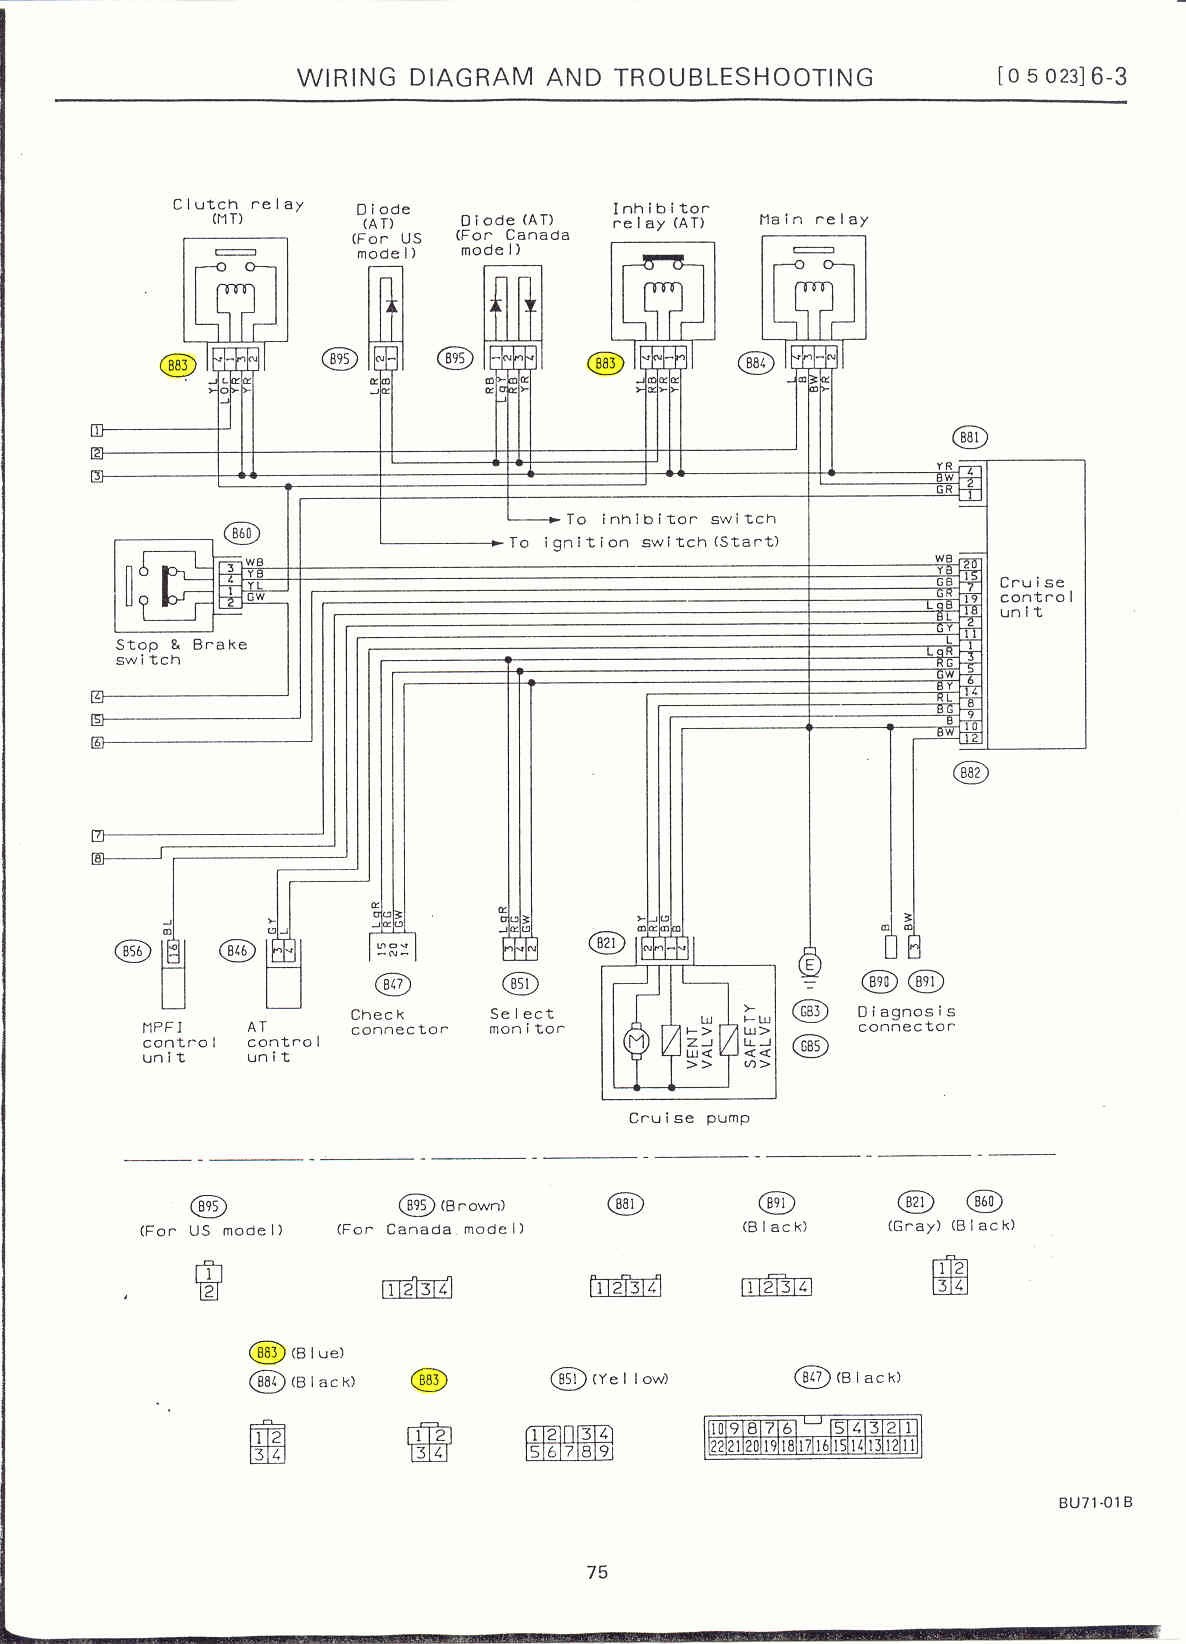 99A20C 2006 Subaru Legacy Stereo Wiring Diagram | Wiring ResourcesWiring Resources